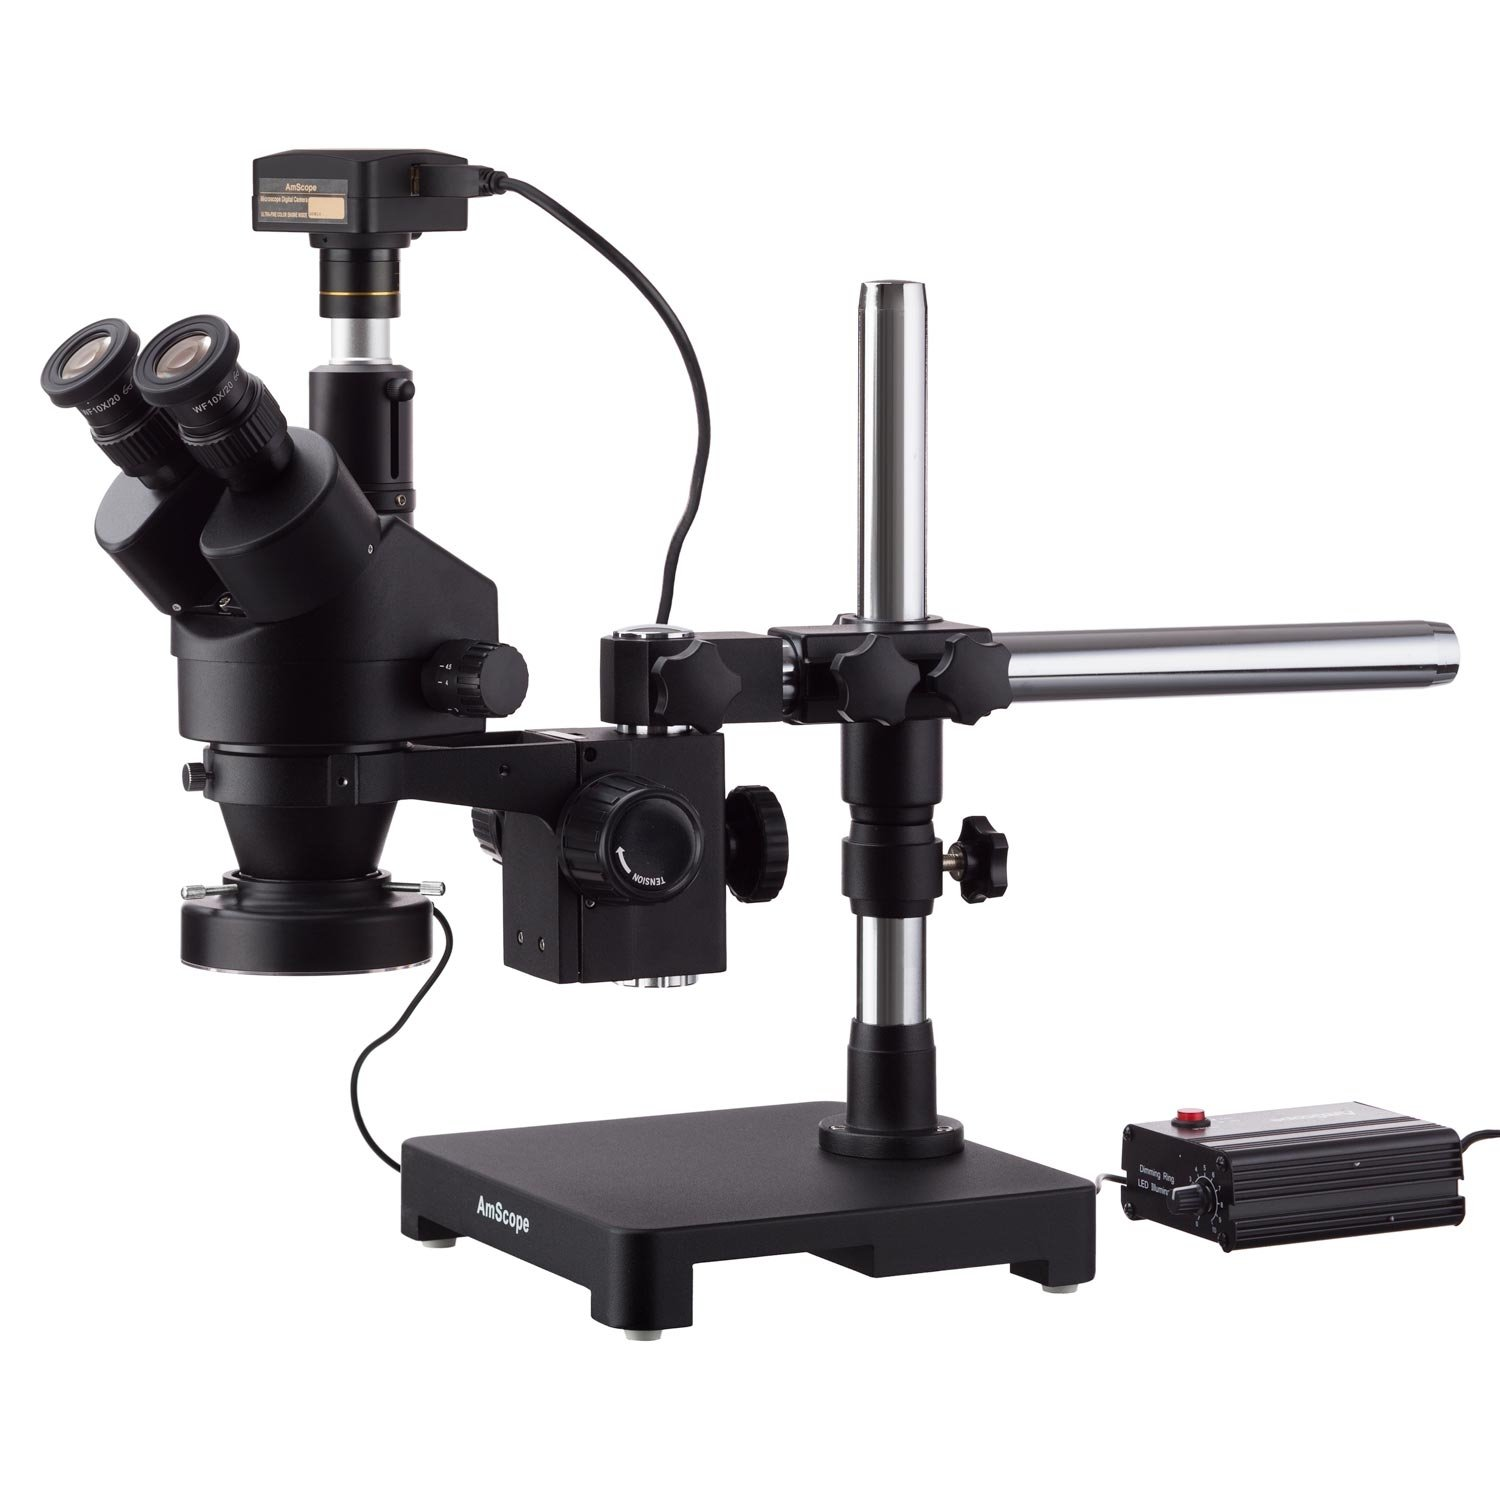 US Plug 3.5X-90X Trinocular High Definition Microscope Dual Arm Stand Stereo Zoom Microscope with Ring Lamp 100-240V for Teaching Demonstration Laboratory Trinocular Microscope